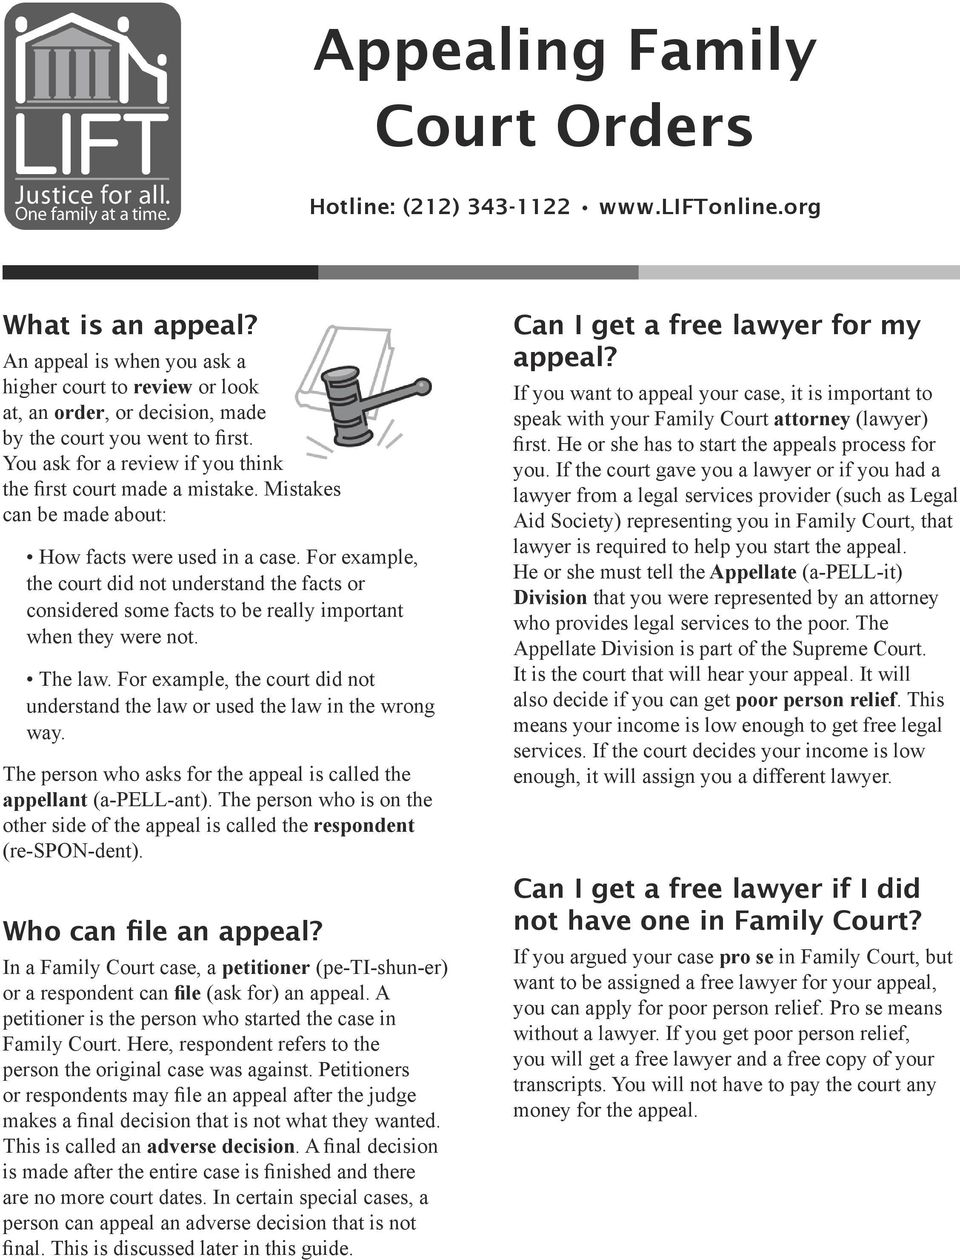 Appealing Family Court Orders - PDF